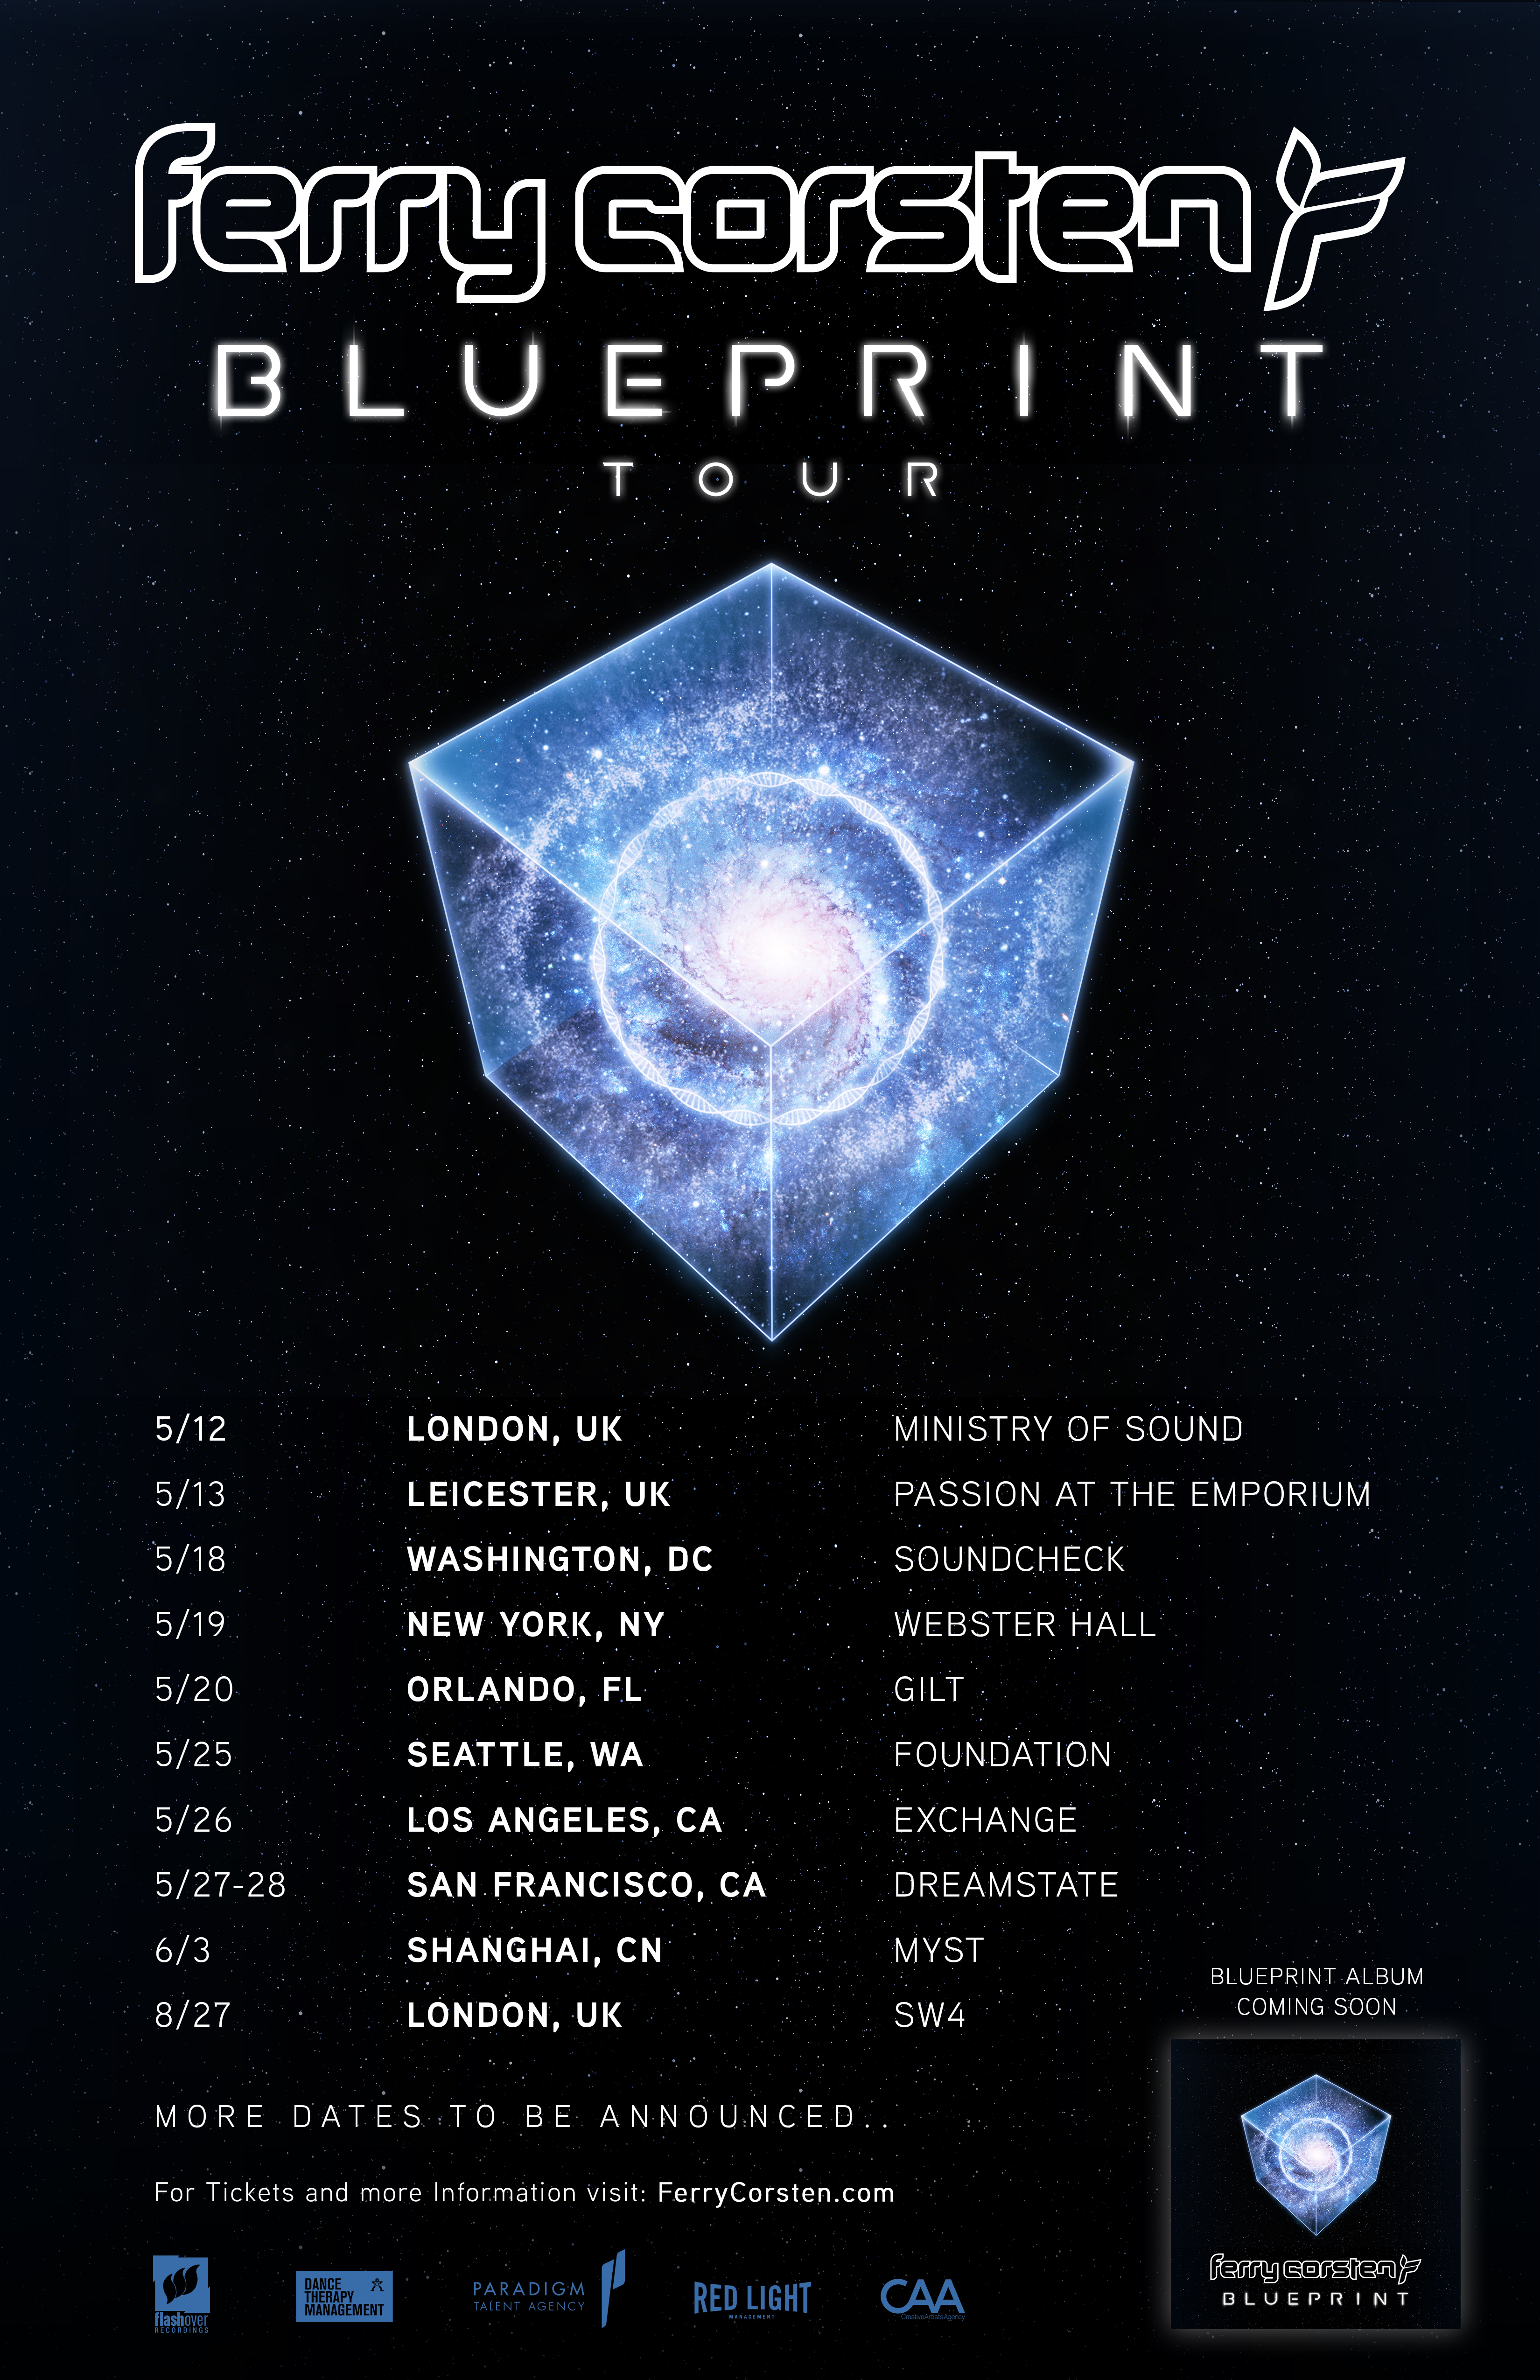 Ferry corsten discovers his blueprint with new sci fi concept the official blueprint album tour will touch down at myst in shanghai sw4 in london exchange in los angeles webster hall in new york with more to be malvernweather Choice Image